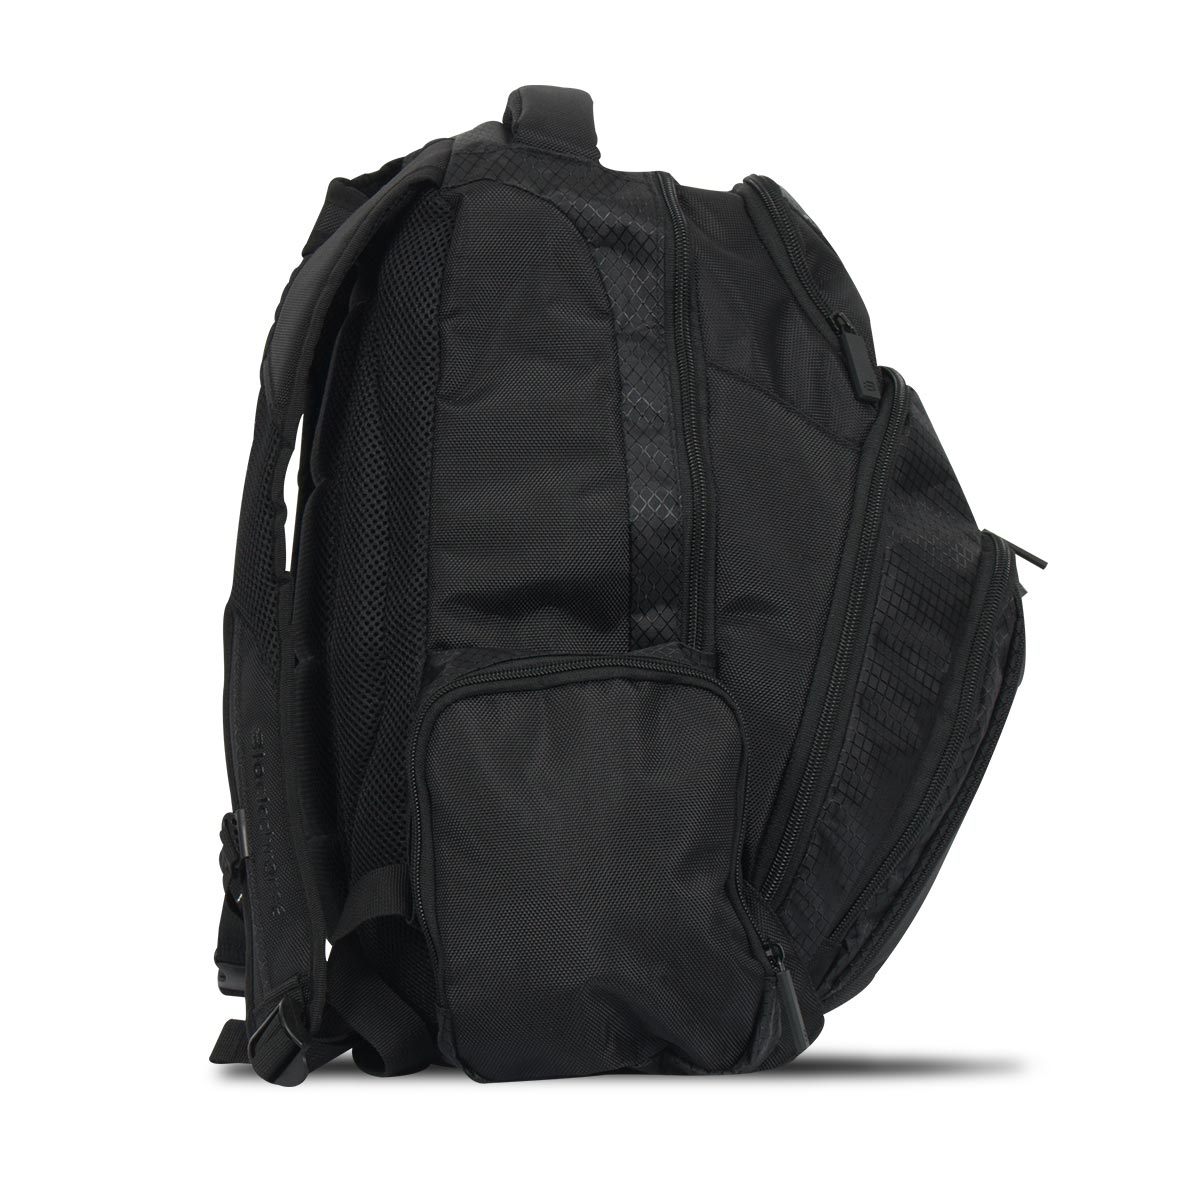 The Elite Backpack #2